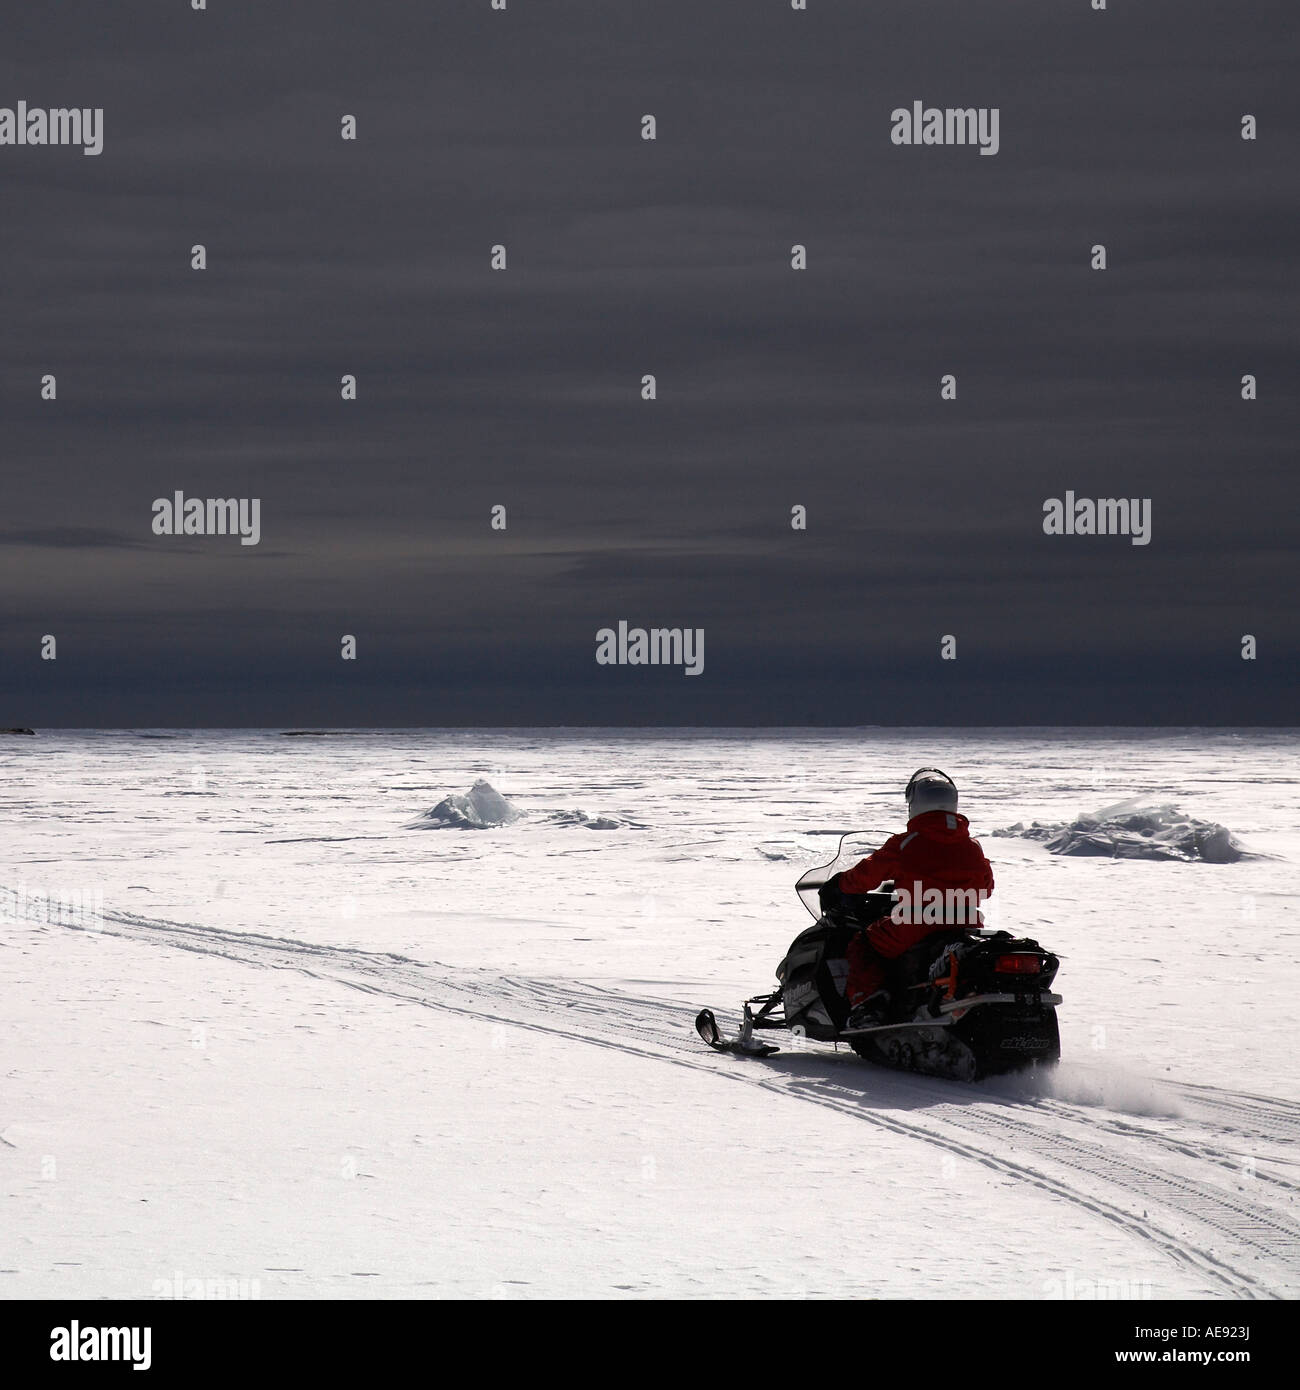 Man on snowmobile Georgian Bay Ontario Canada - Stock Image